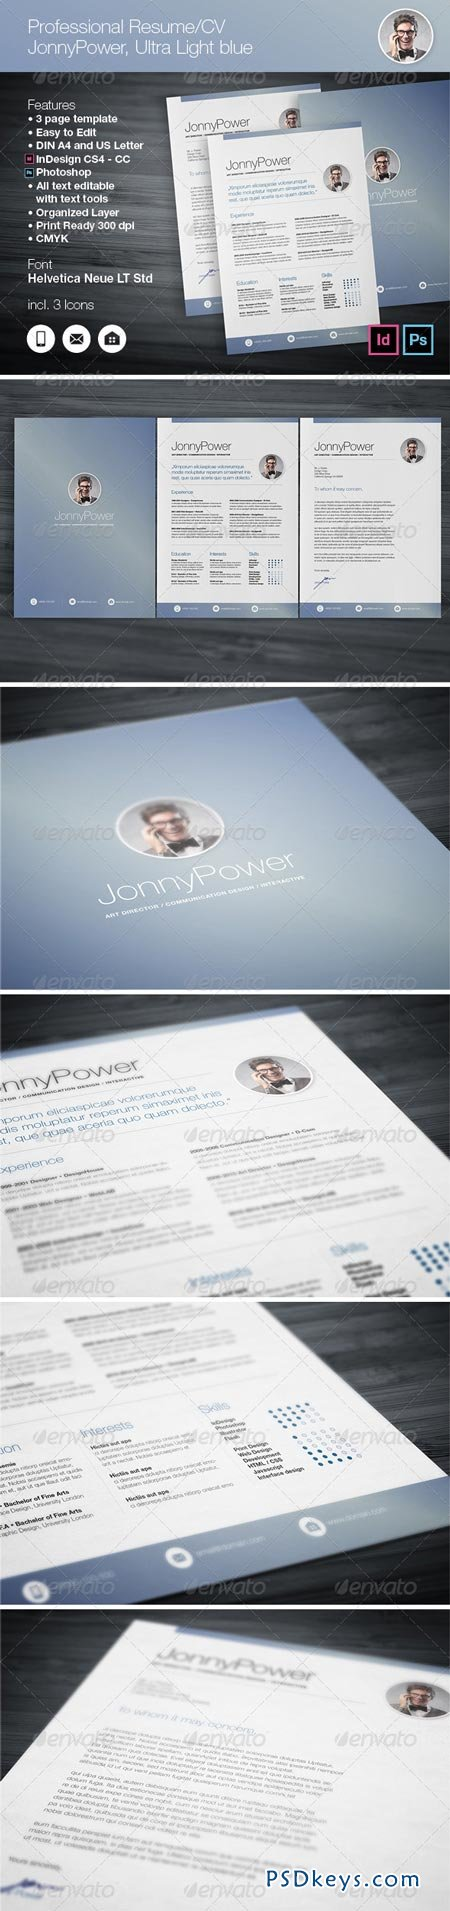 Professional Resume CV Ultra Light blue 6990237